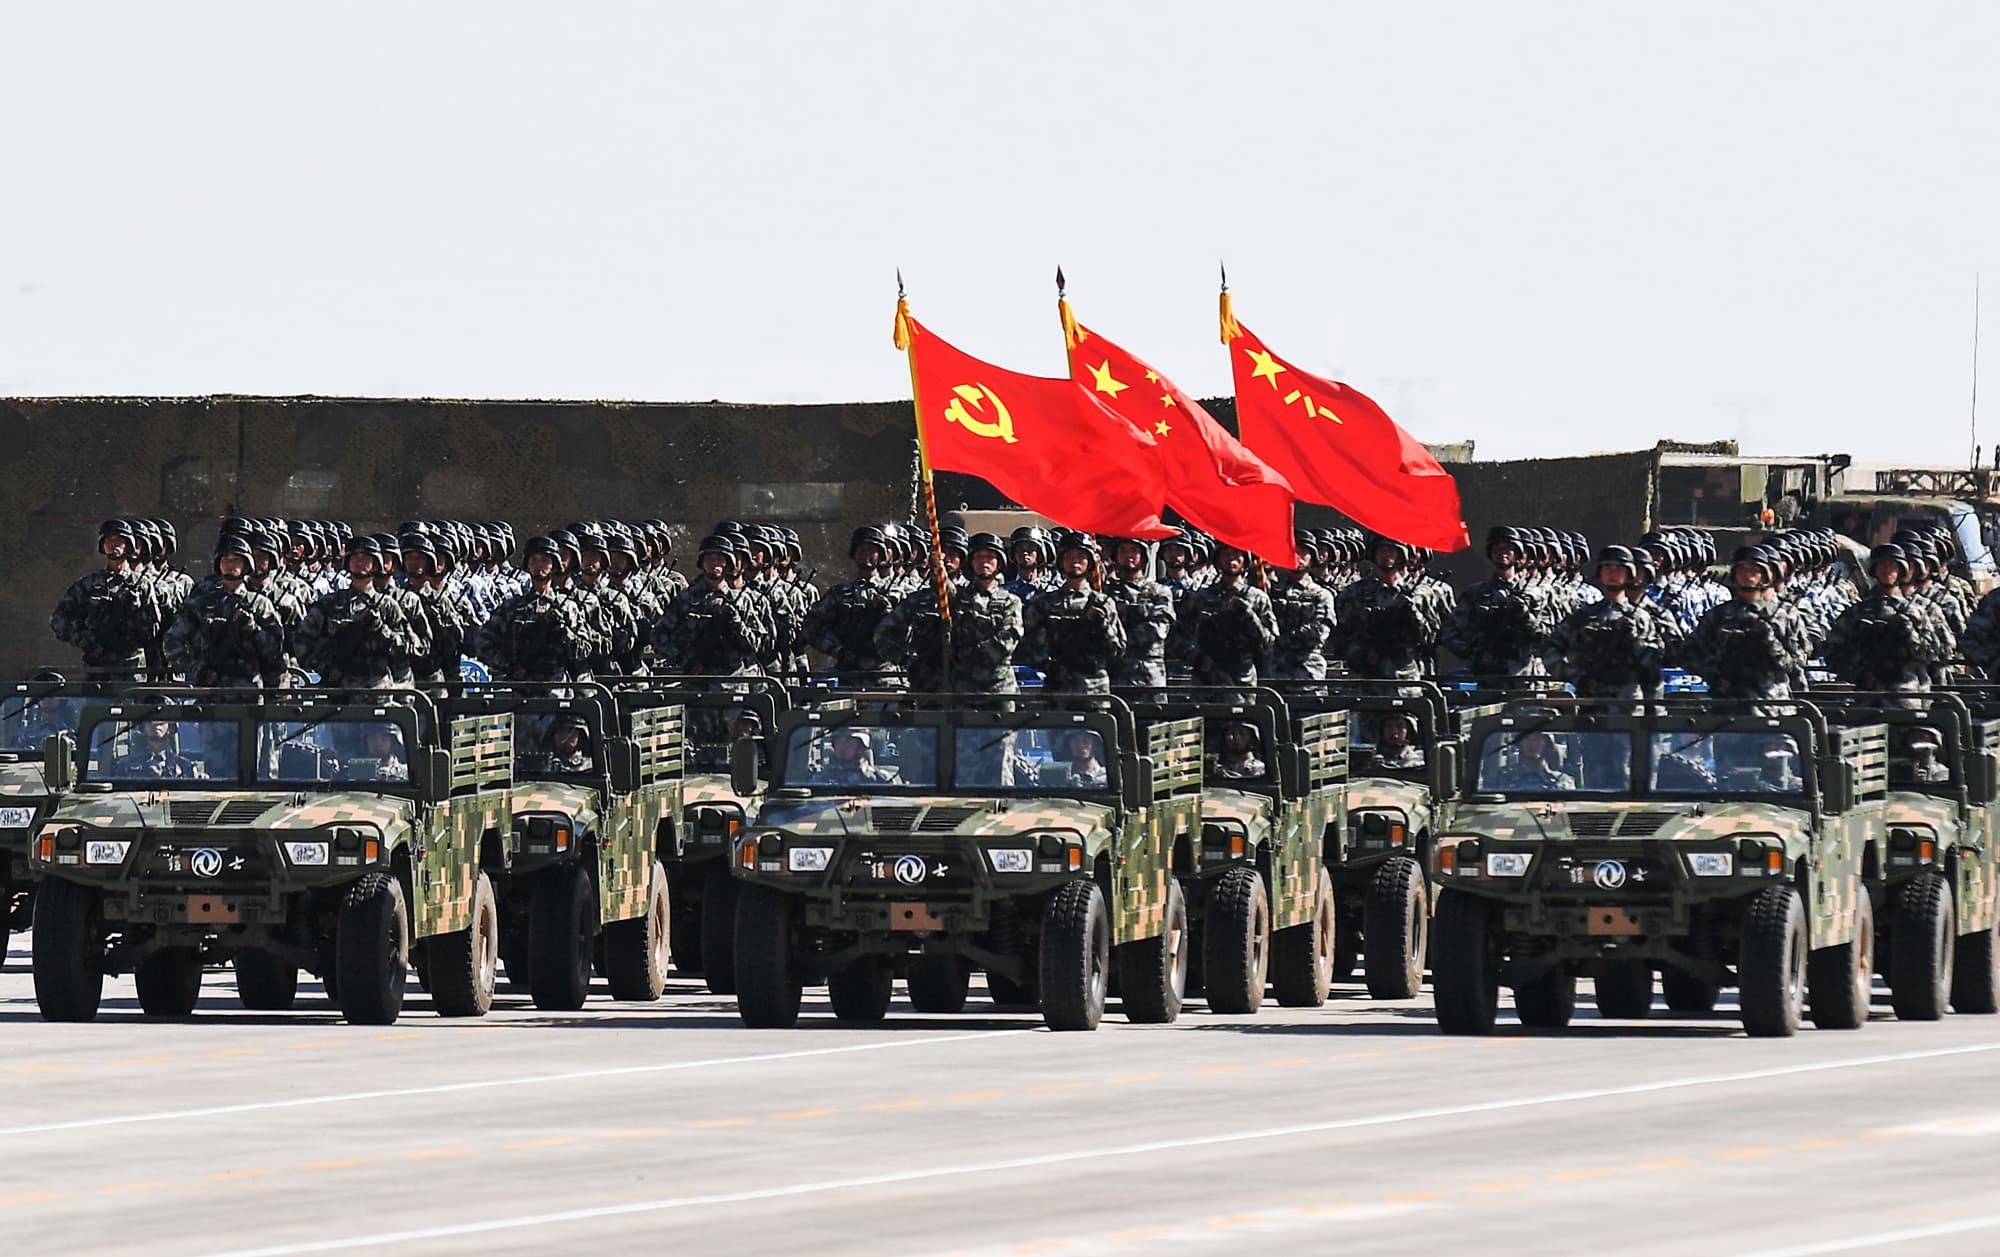 Chinese soldiers carry the flags of (L to R) the Communist Party, the state, and the People's Liberation Army during a military parade at the Zhurihe training base in China's northern Inner Mongolia region on July 30, 2017. ─ AFP